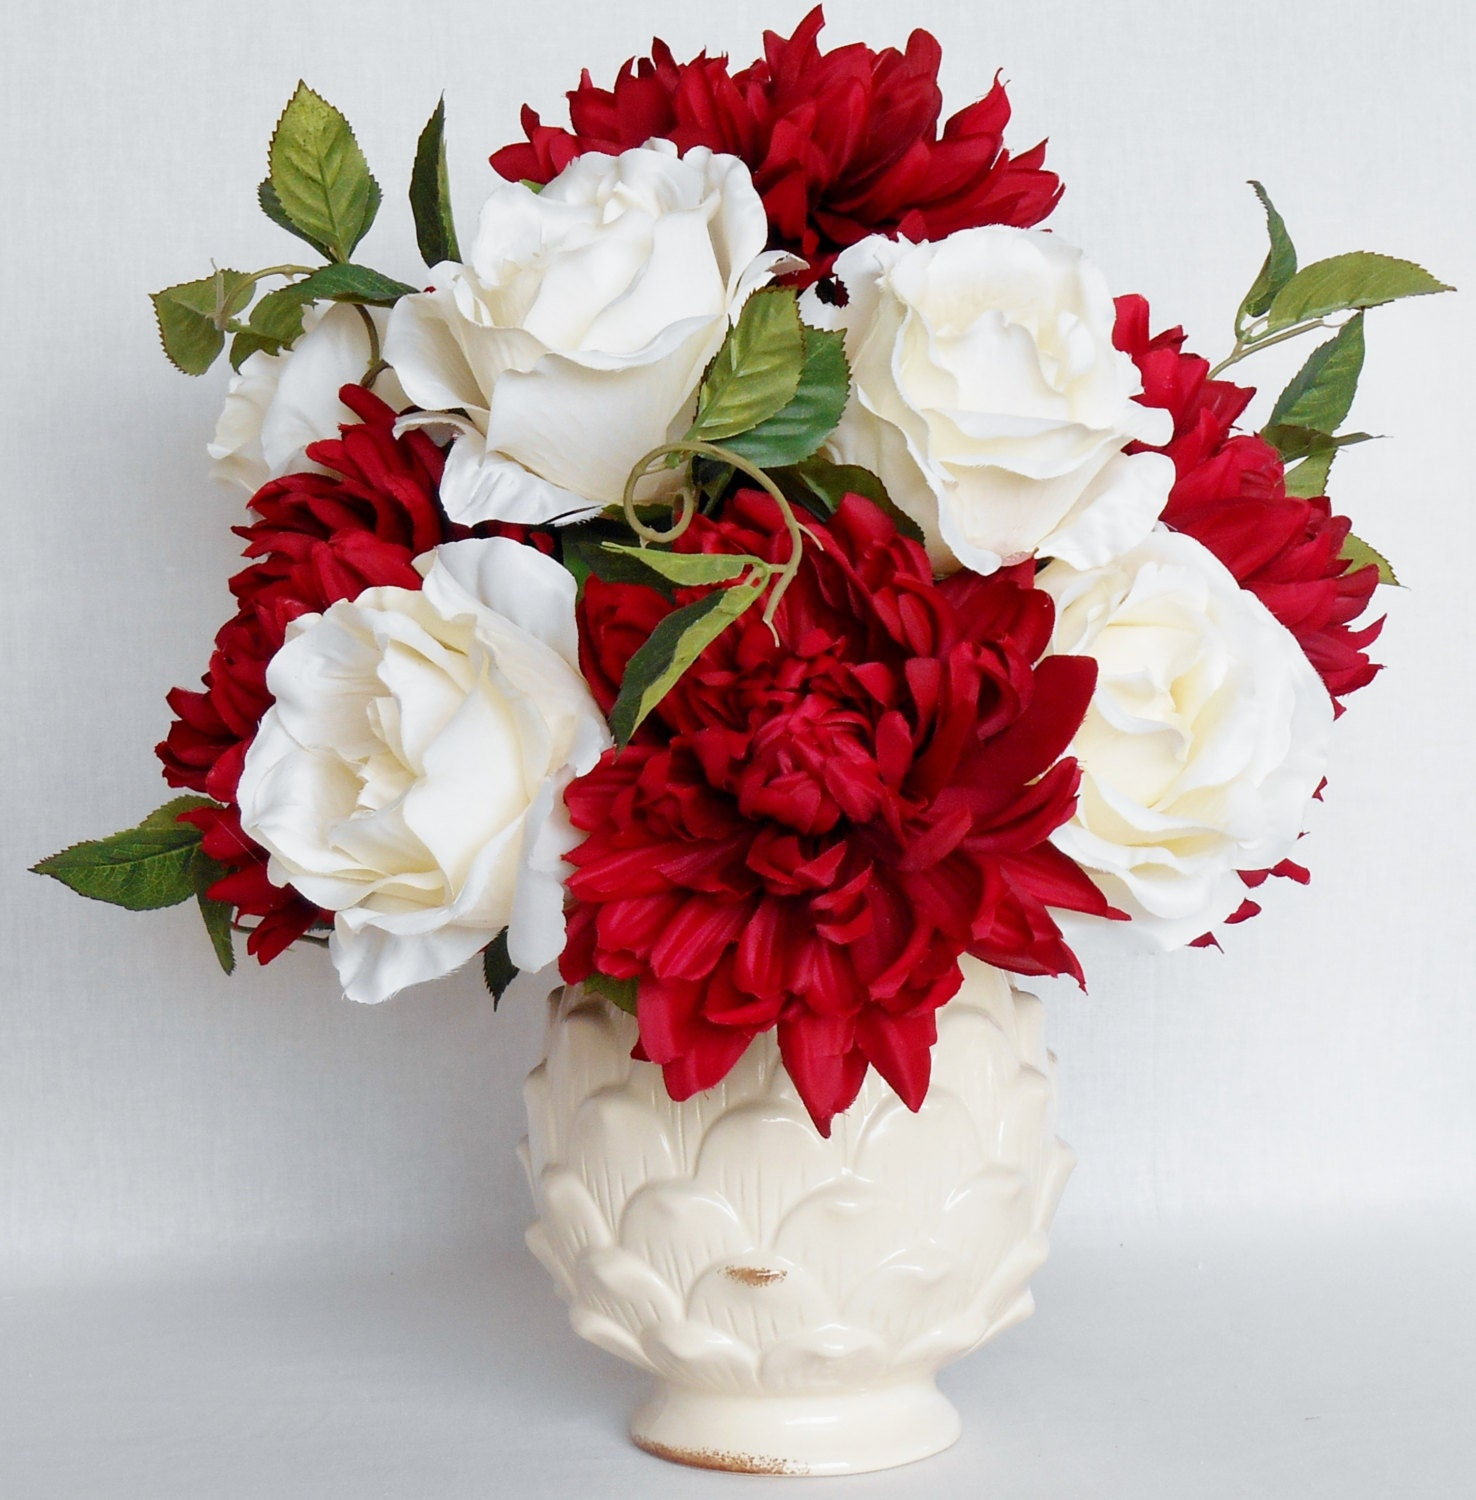 Artificial Flower Arrangement Red Dahlias Cream Roses Cream